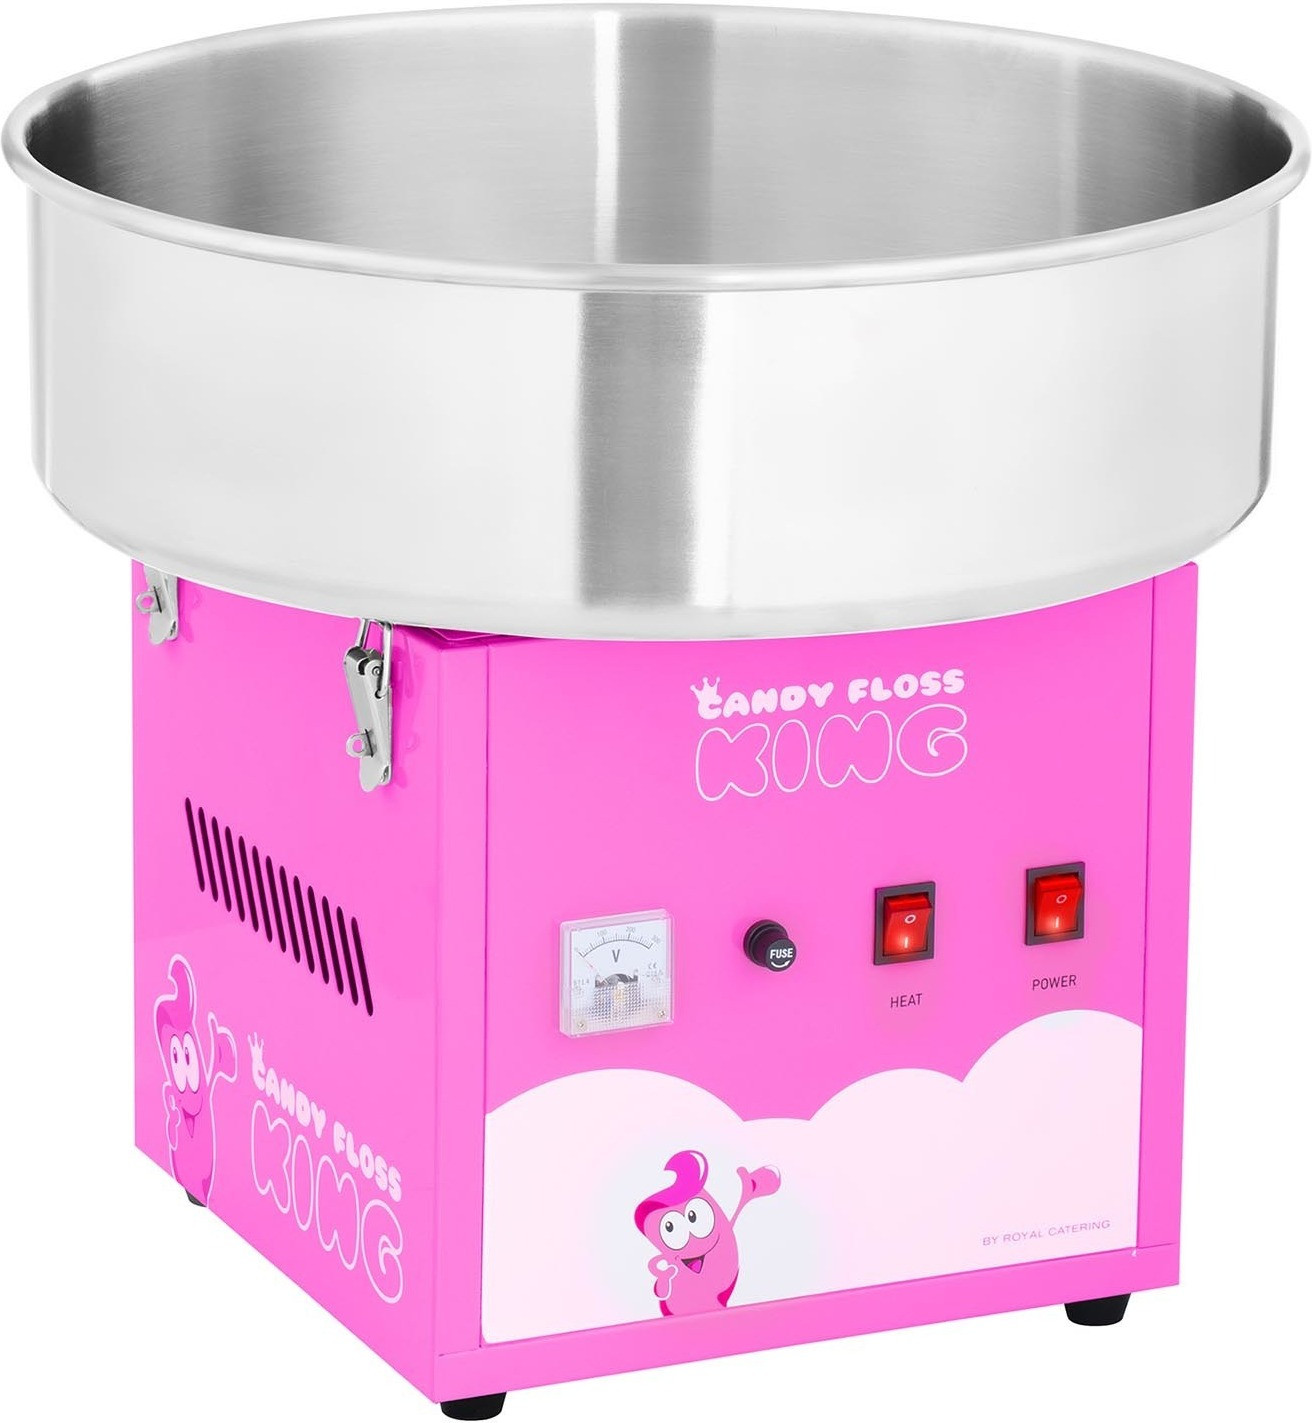 Image of Catering Royal Candymaker RCZK-1200-R